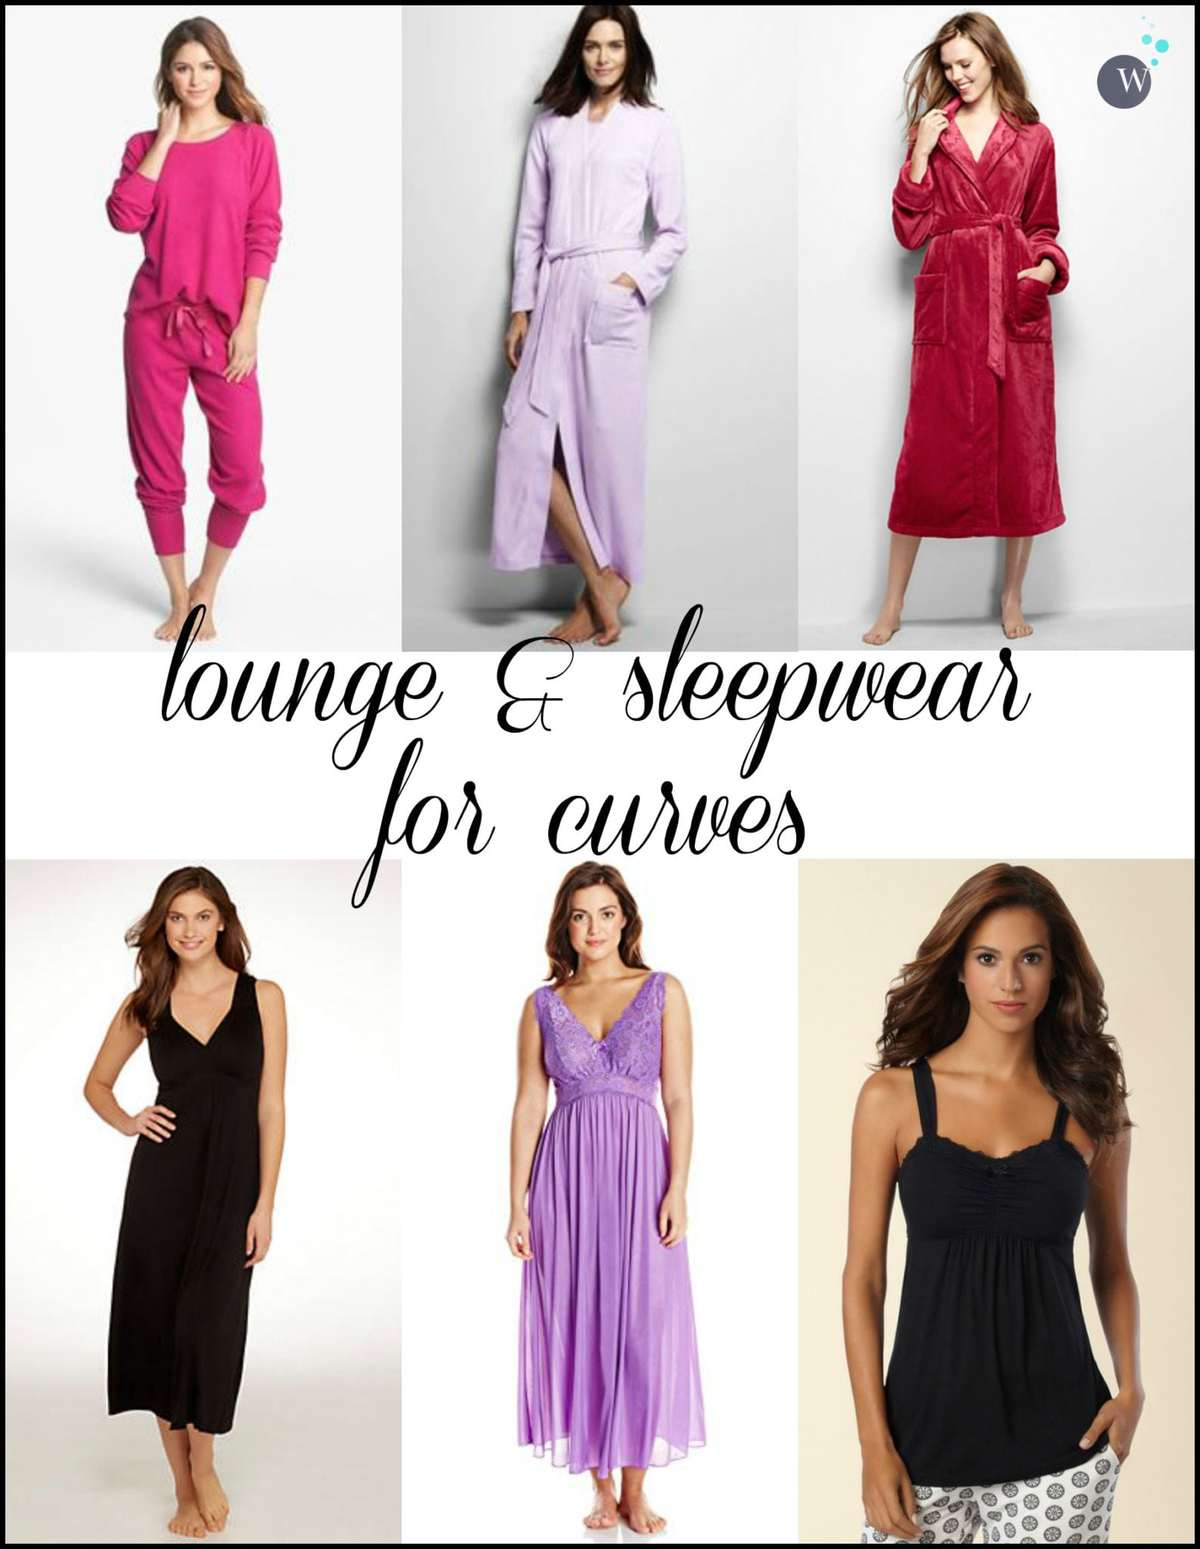 Best Loungewear and Sleepwear Large Busts and Curves c7a712f9e